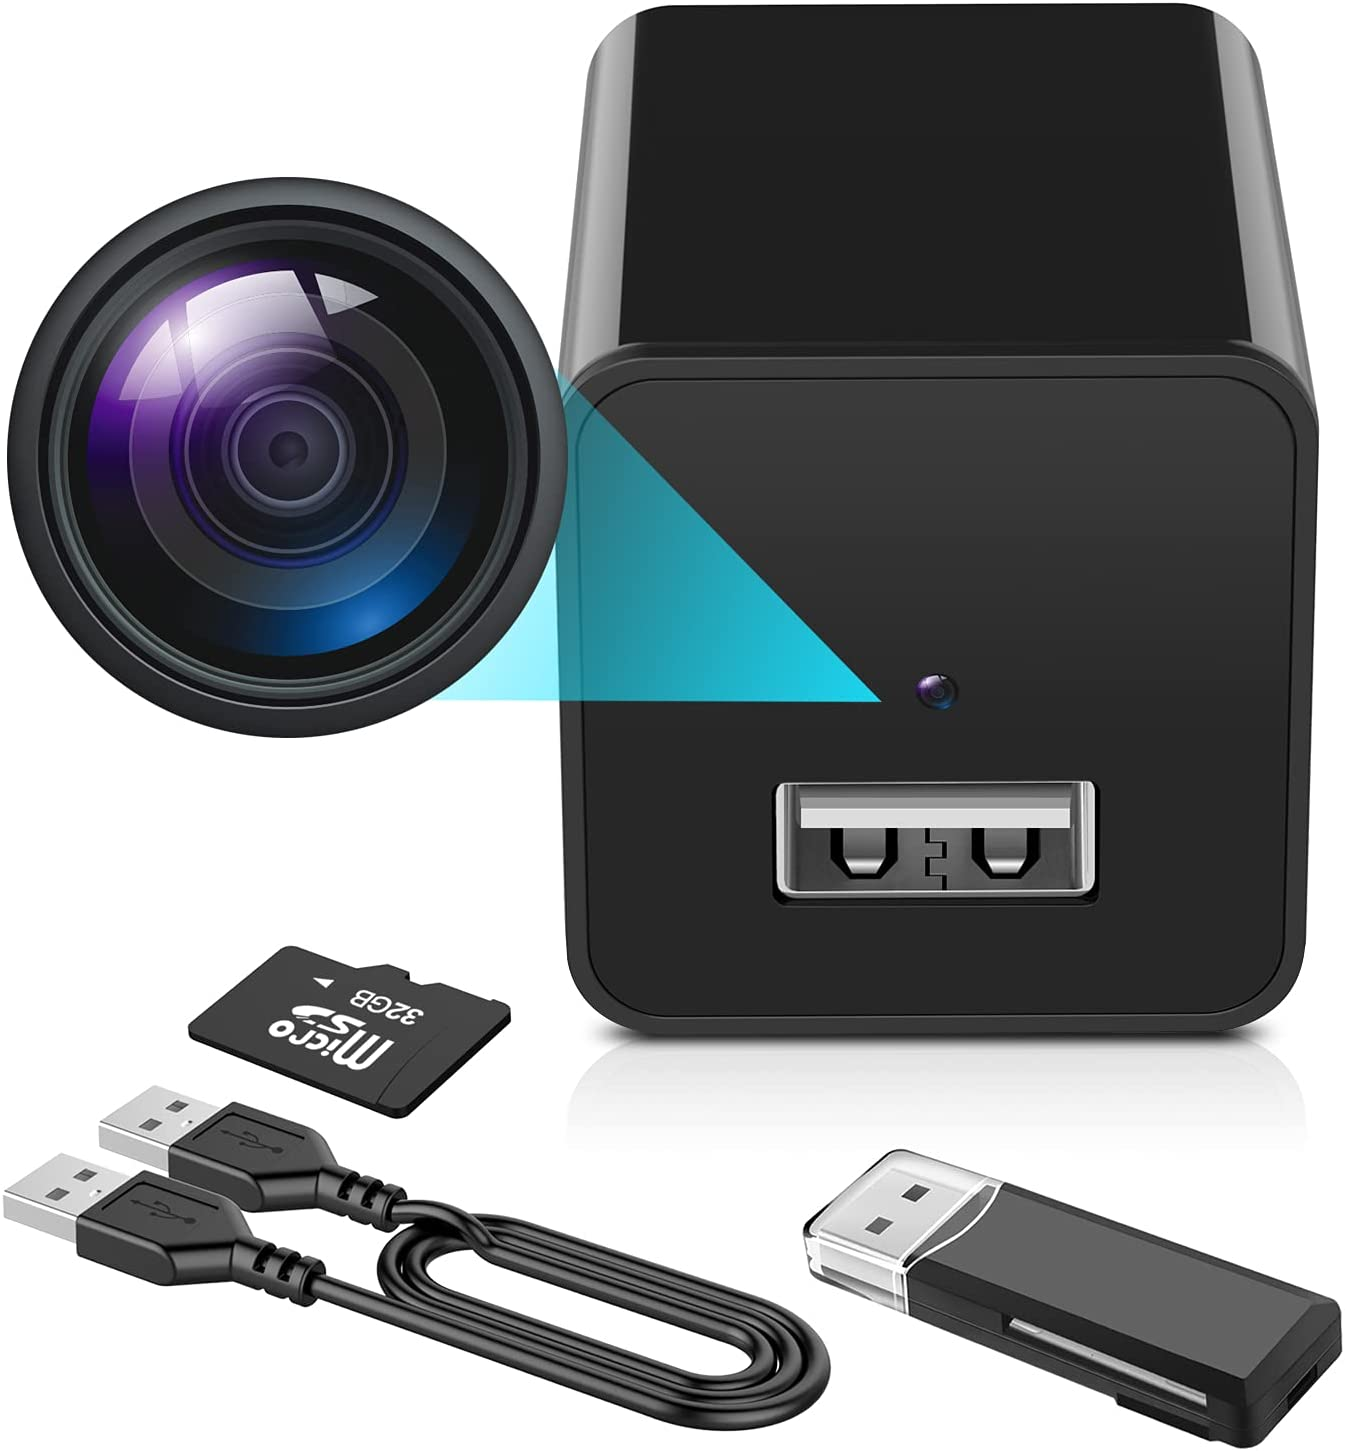 Hidden Camera - 1080P Spy Camera with Audio and Video - Mini Nanny Cam - Portable Motion Detection Small HD Secret Surveillance Camera Charger, Can be Used in Bedroom, Living Room and Toilet